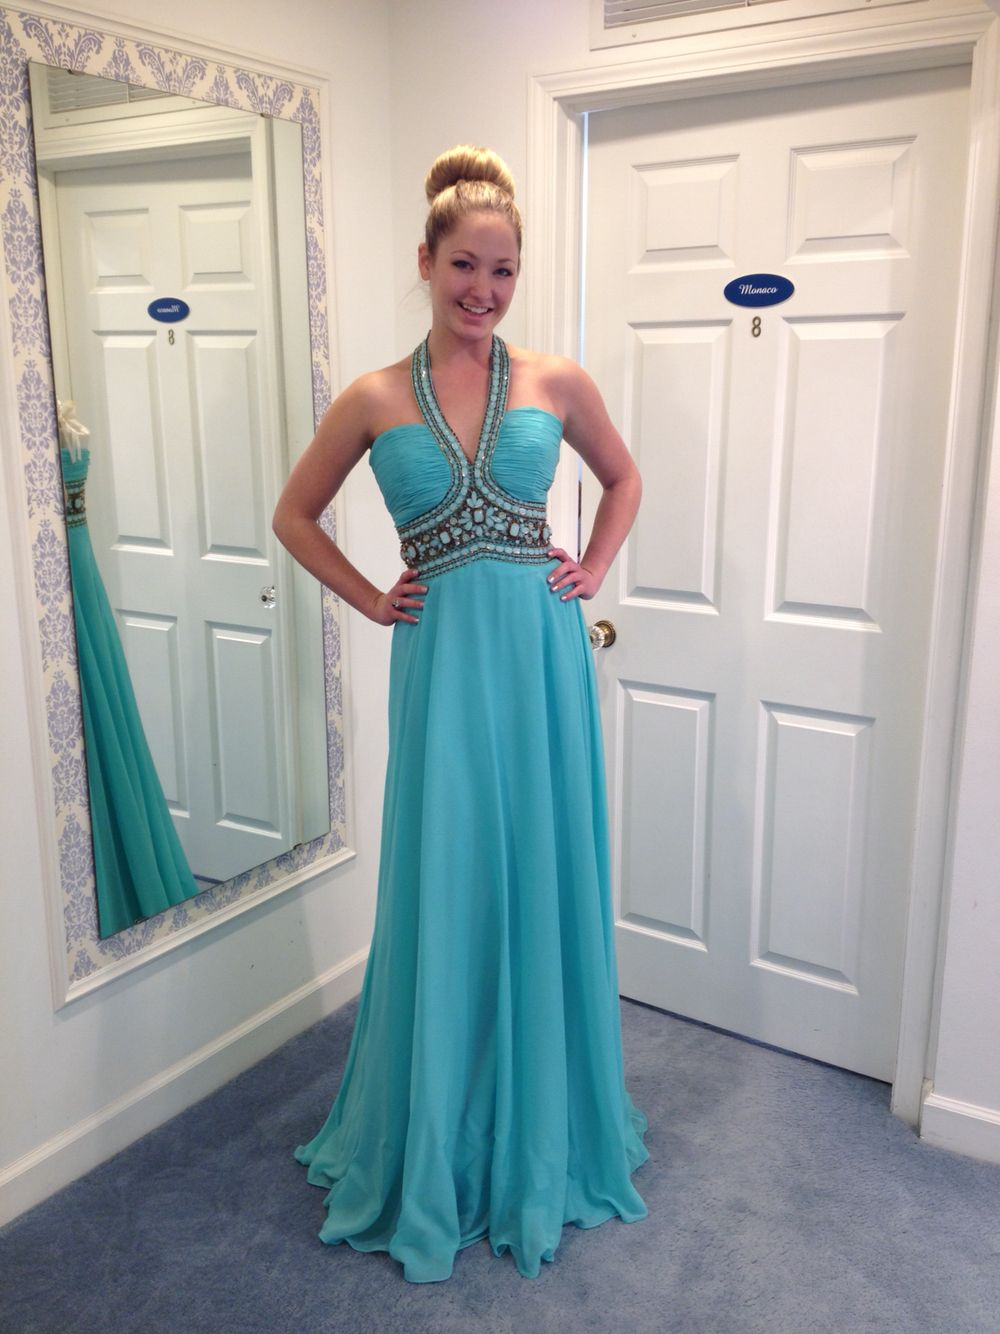 Another new prom arrival kayla is modeling a beautiful turquoise